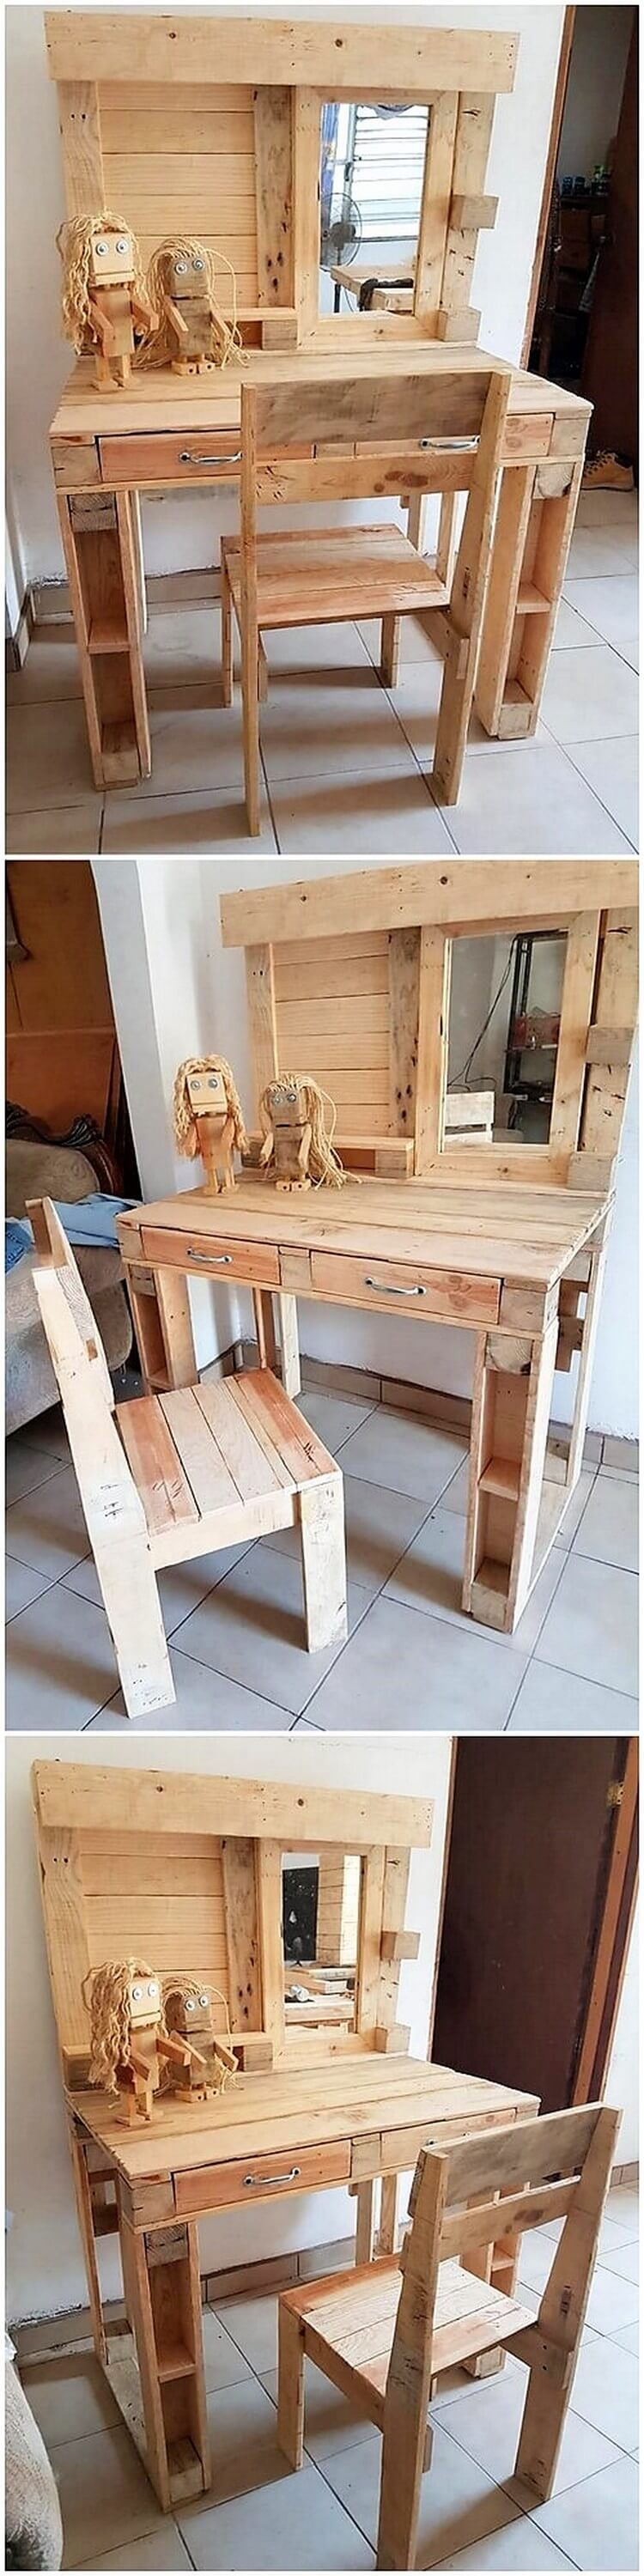 Pallet Dressing Table and Chair